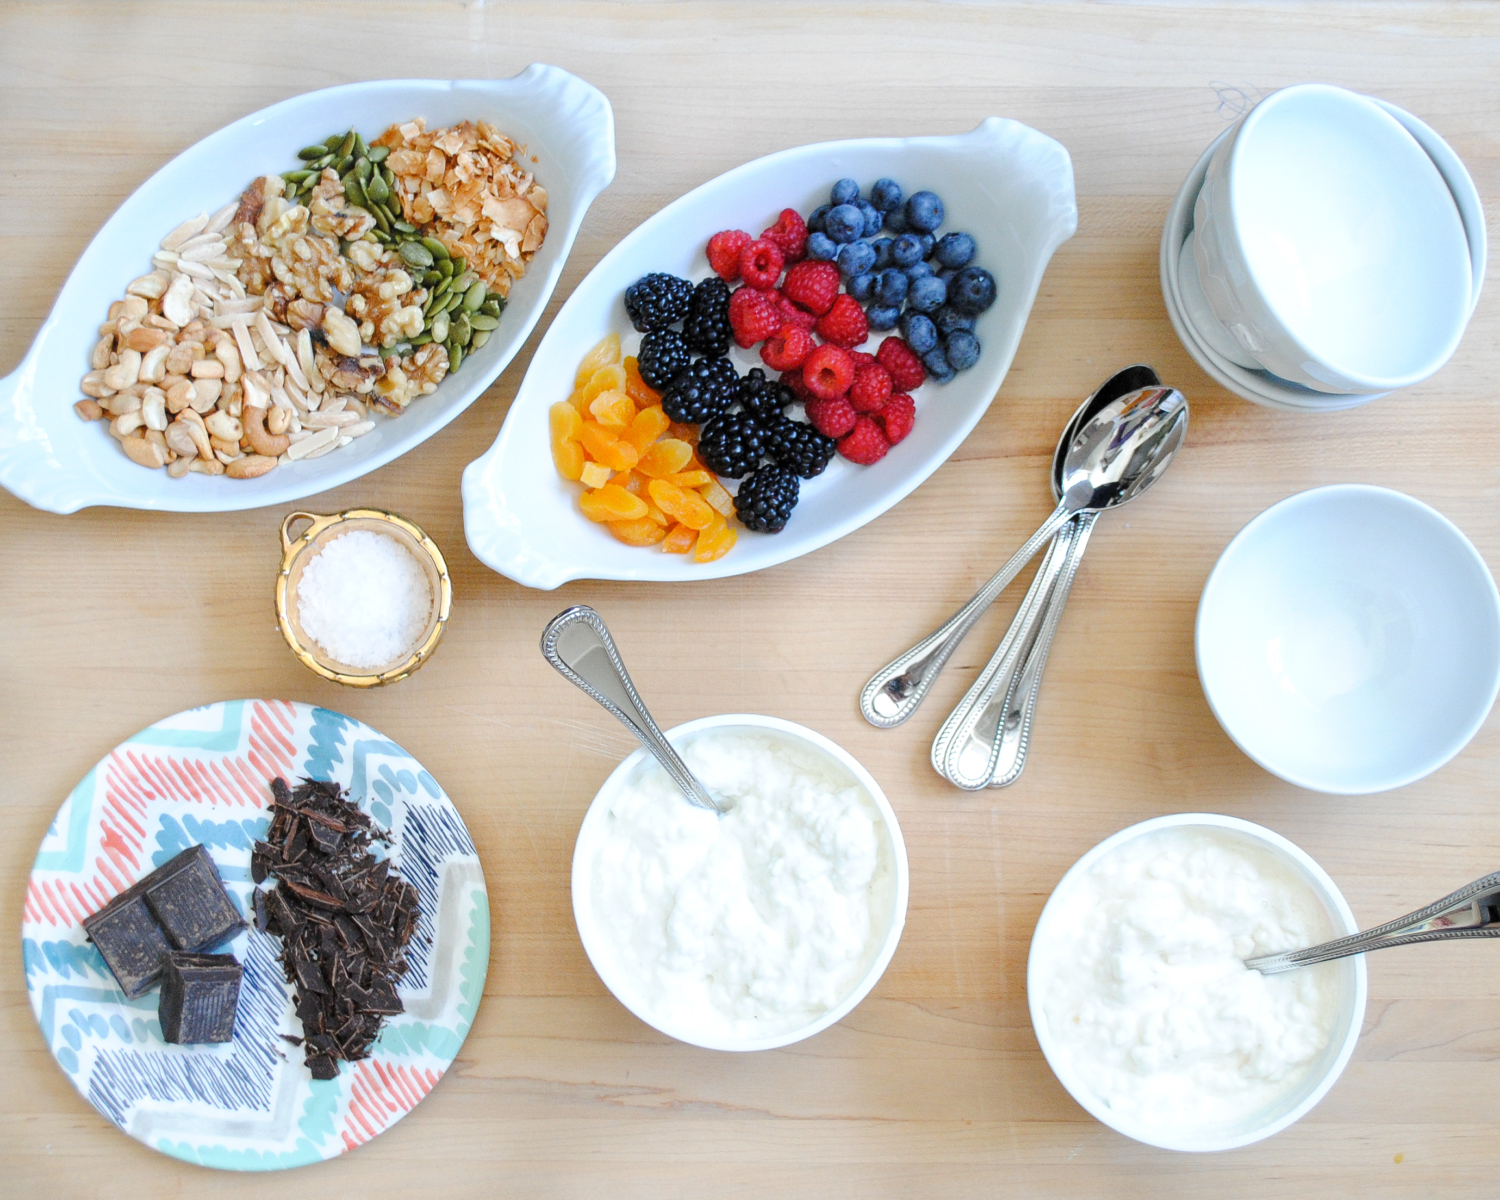 Easy and delicious cottage cheese recipes that will make you LOVE cottage cheese!